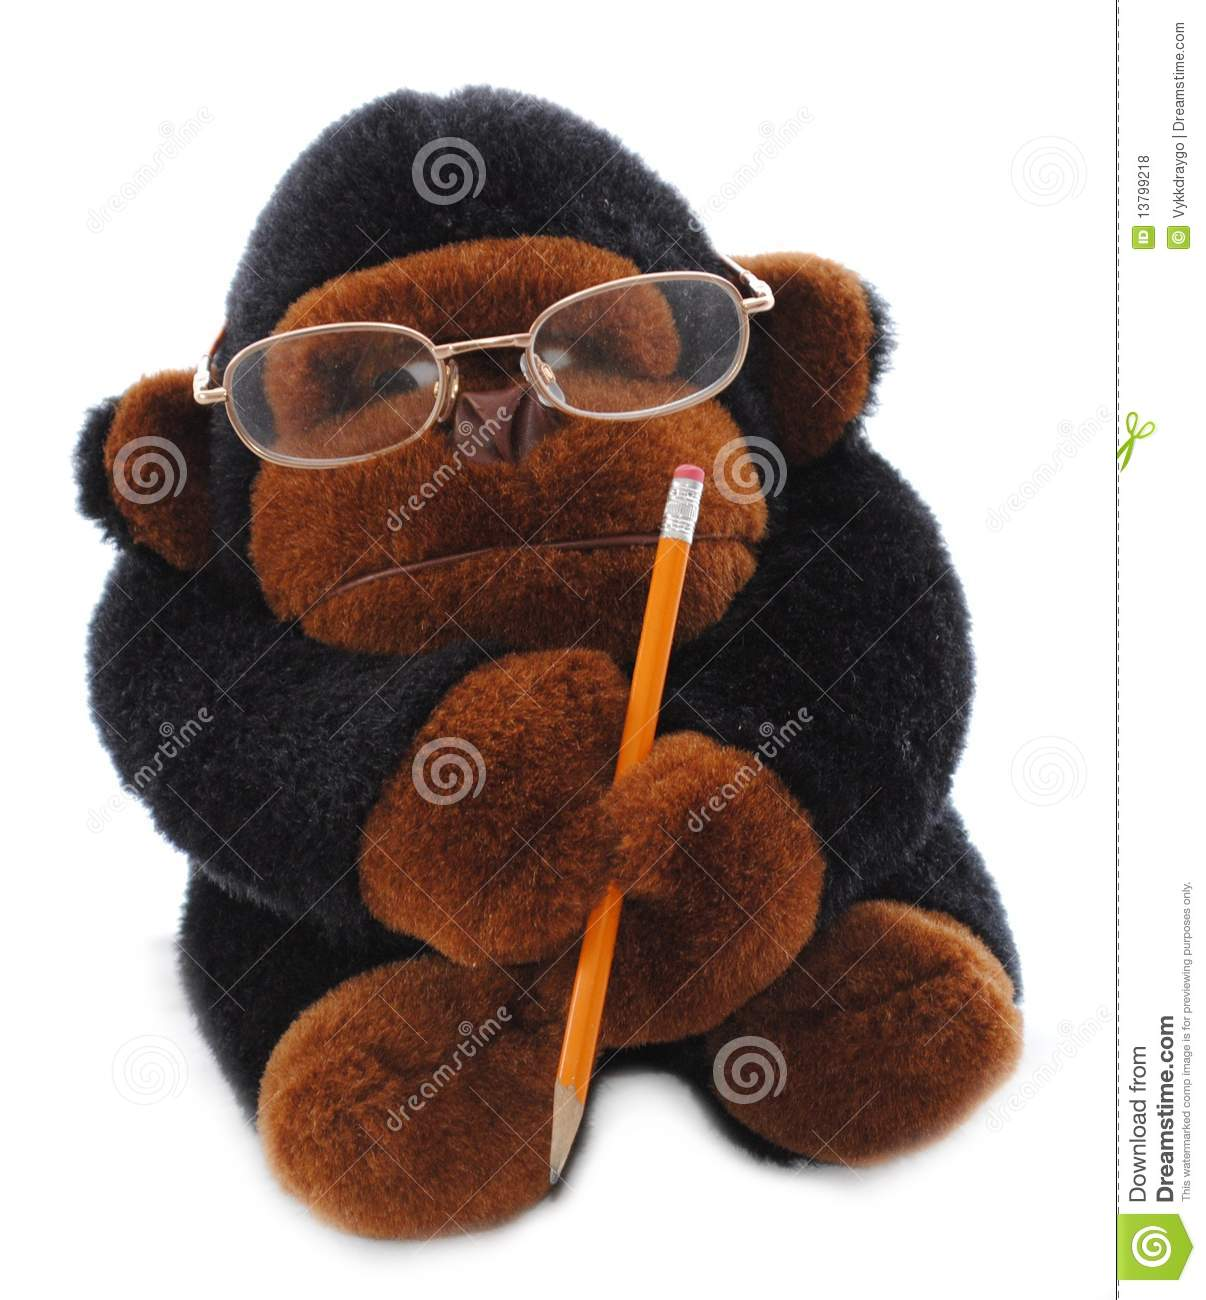 Scholarly Gorilla stock photo. Image of business 1b5d8e167b7